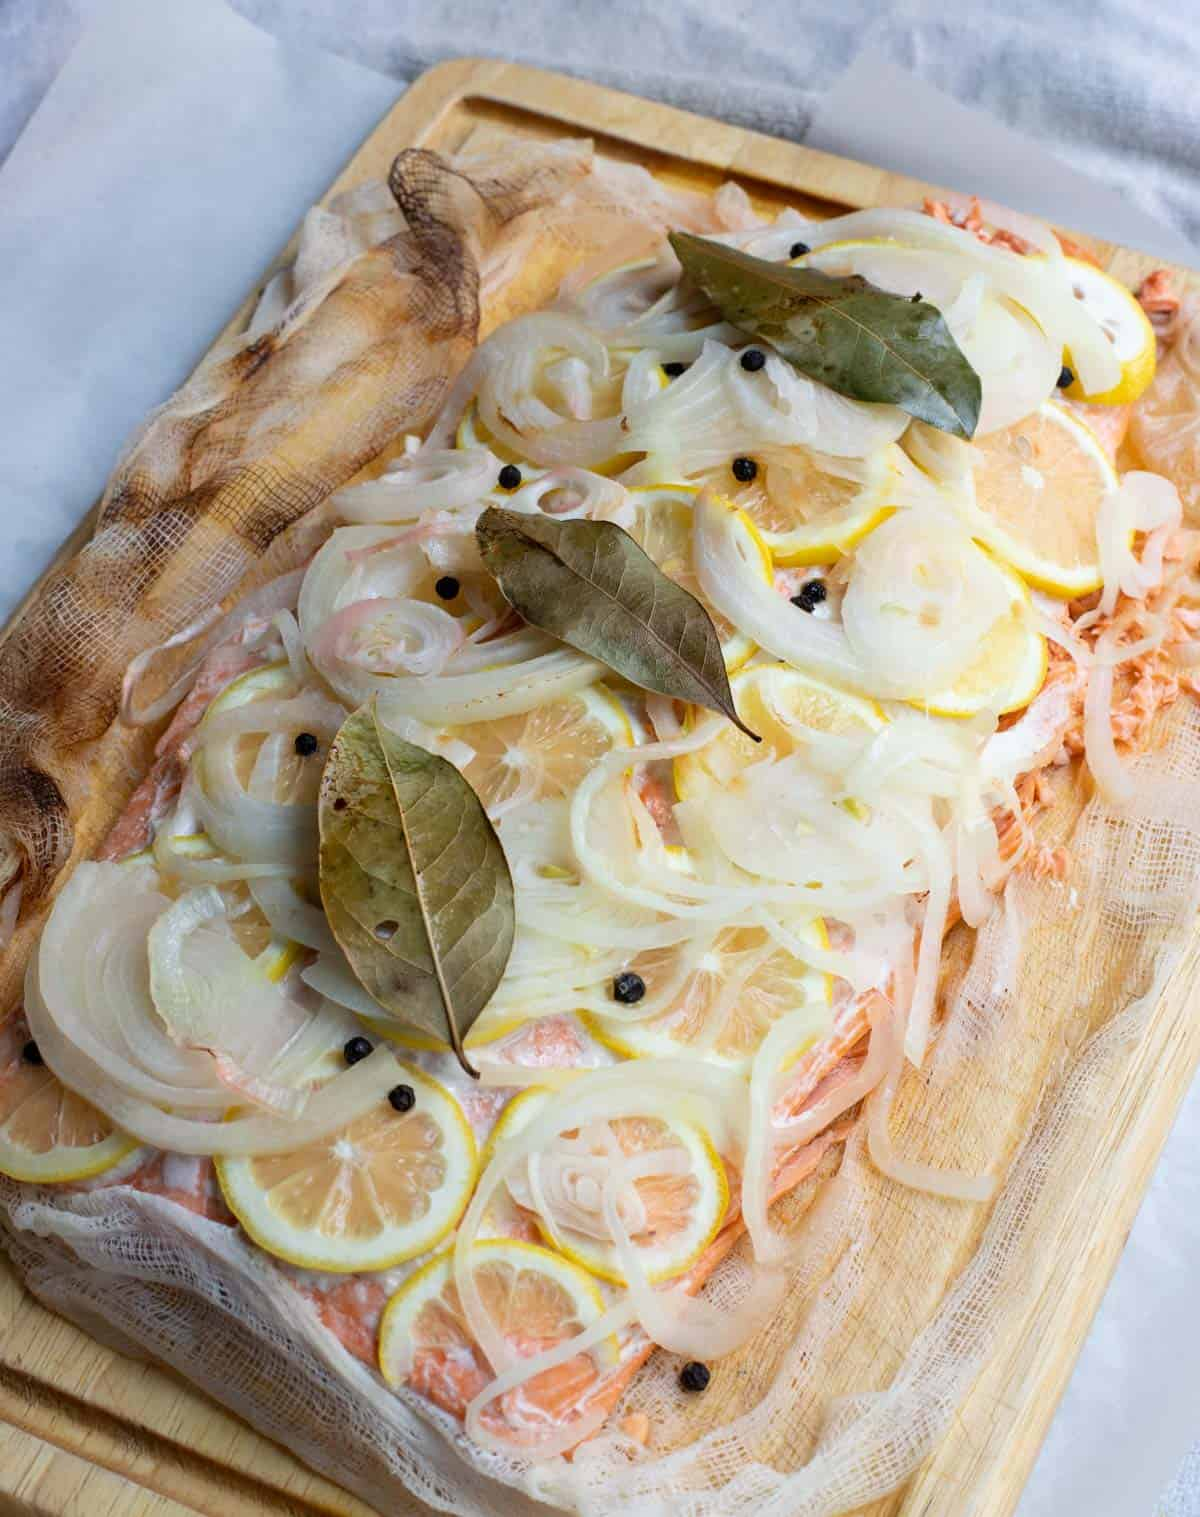 Poached salmon fillet topped with lemon, onion, peppercorns and bay leaves